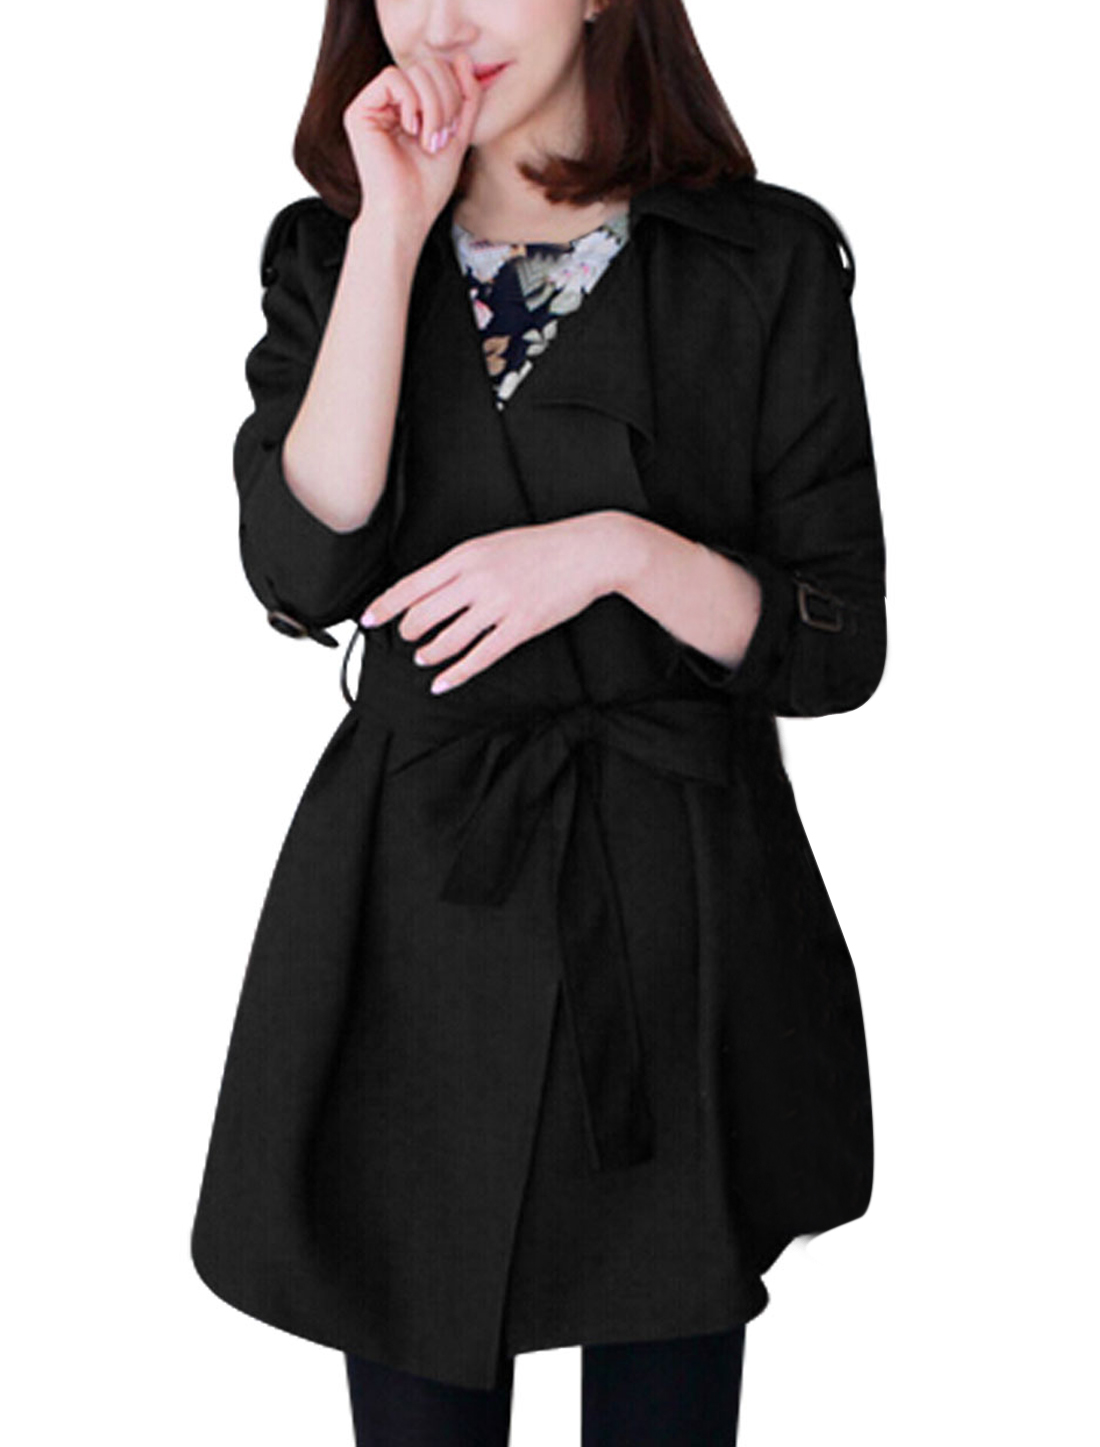 Ladies Black Buttonless Cape Style Adjustable Buckle Strap Cuffs Trench Coat M